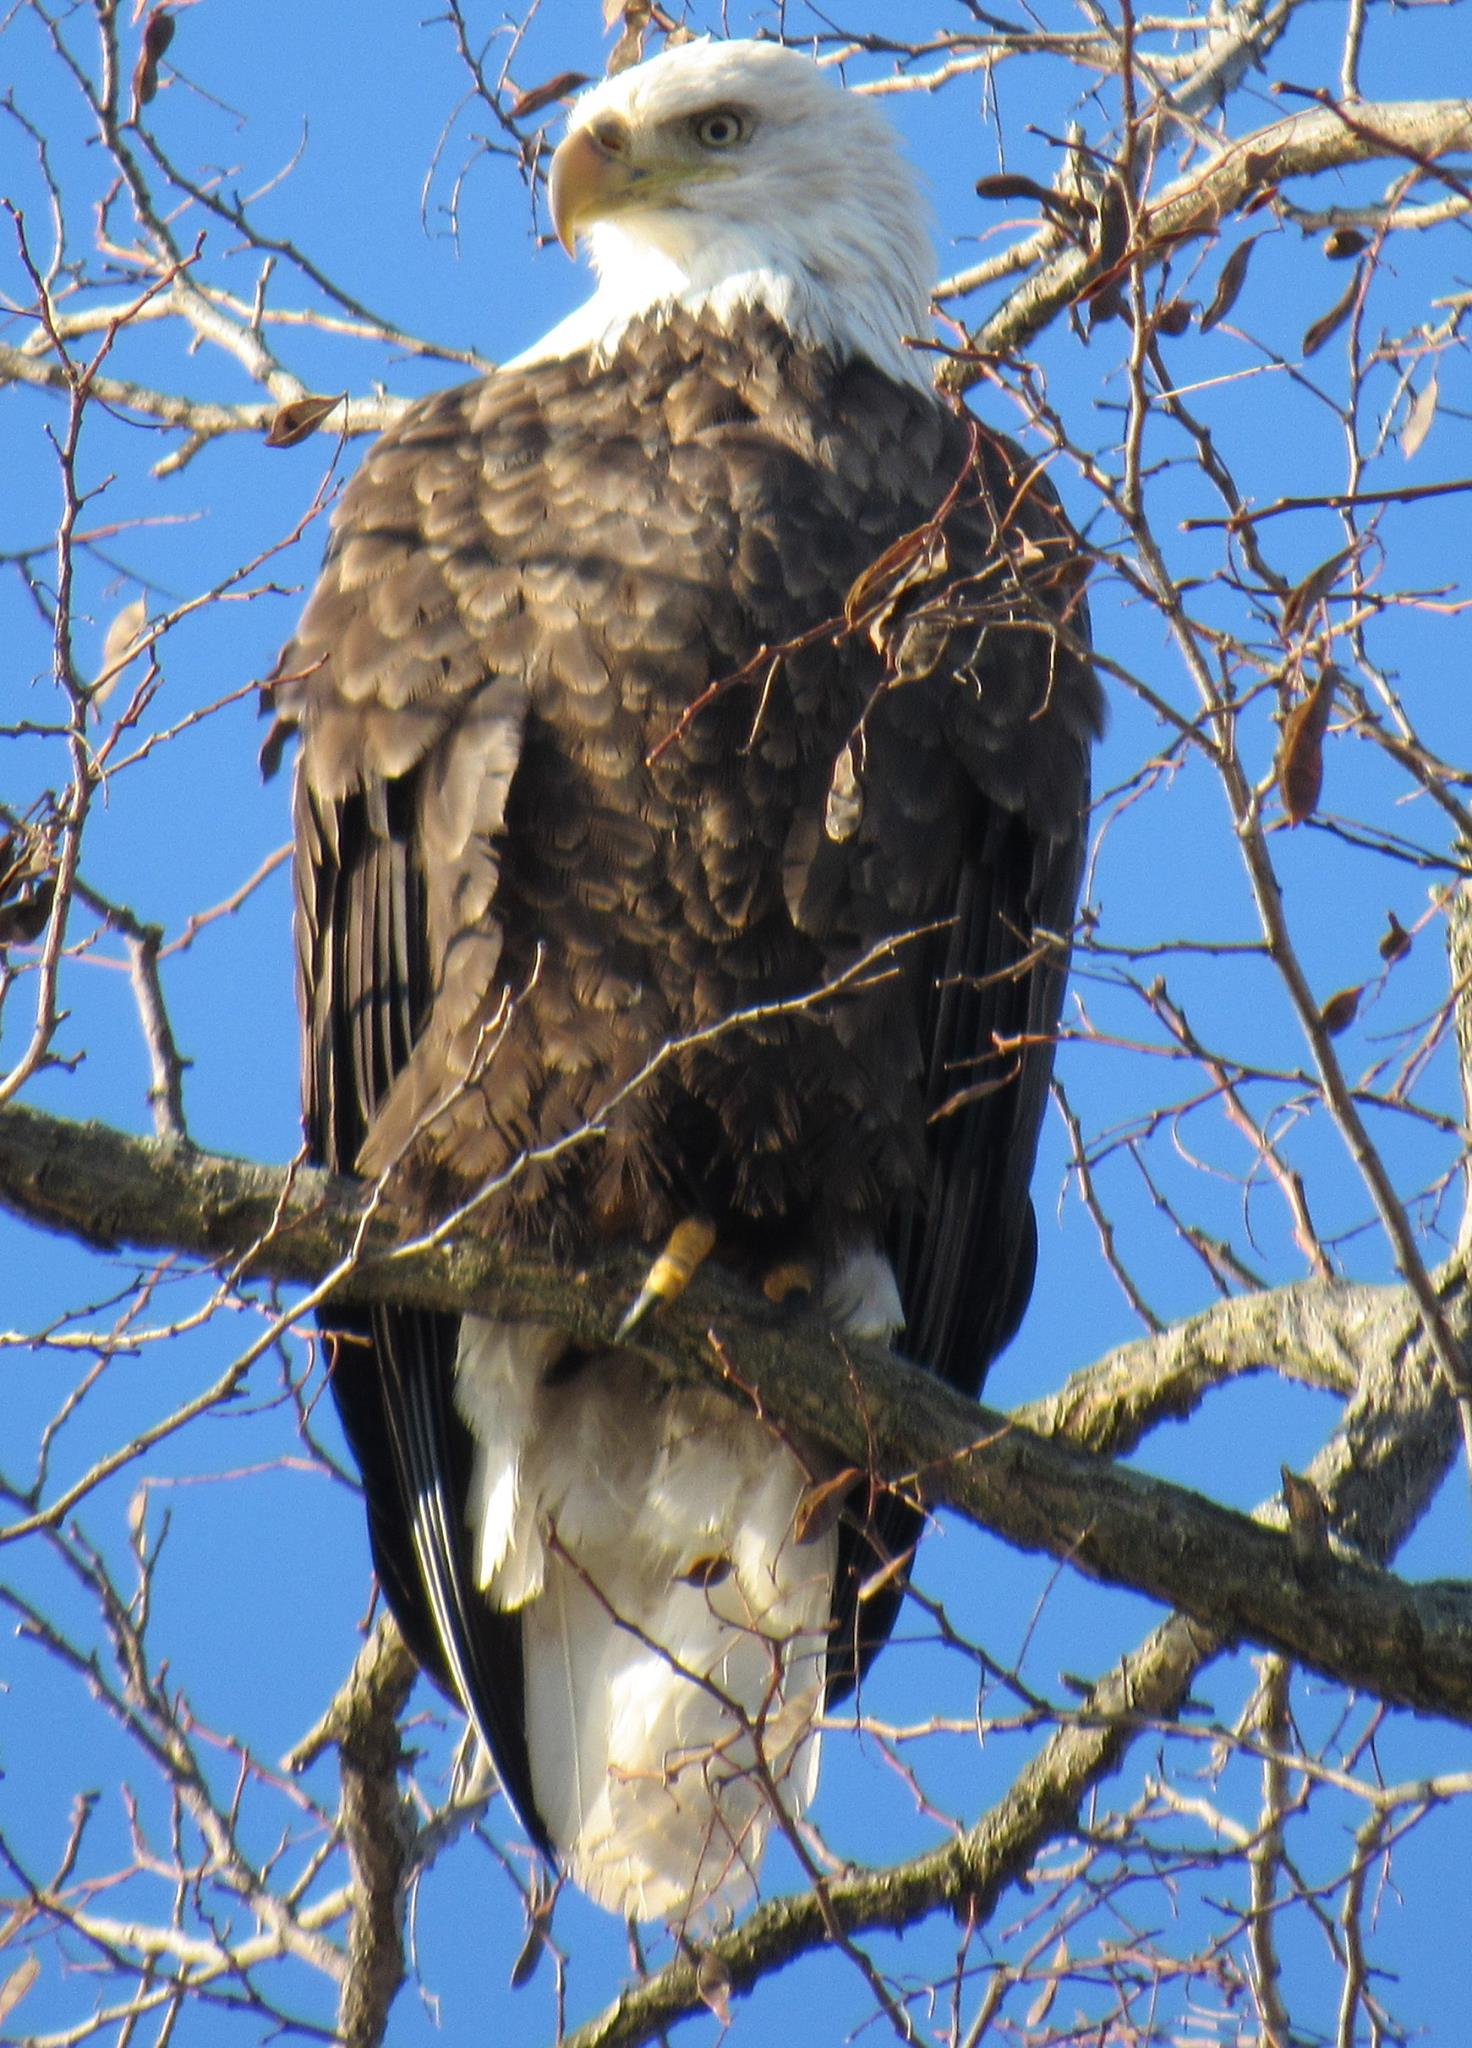 close_up_bald_eagle_1454432977.jpg